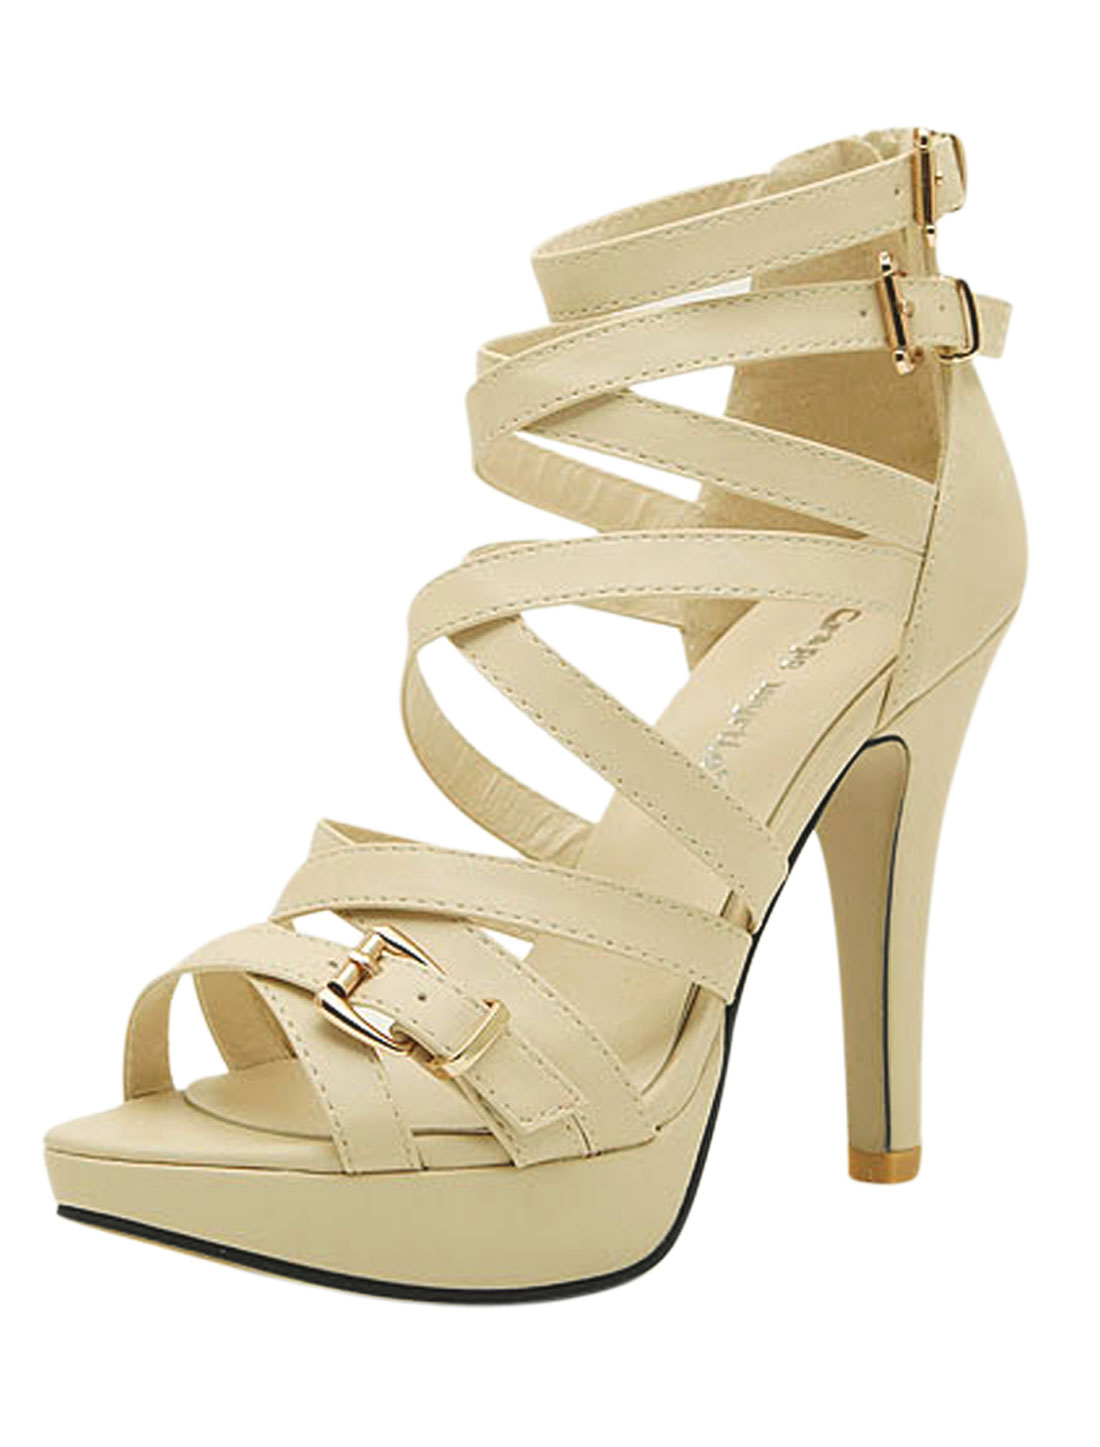 Woman Interlacing Straps Open Toe Zipper Back Summer Heels Beige US 7.5